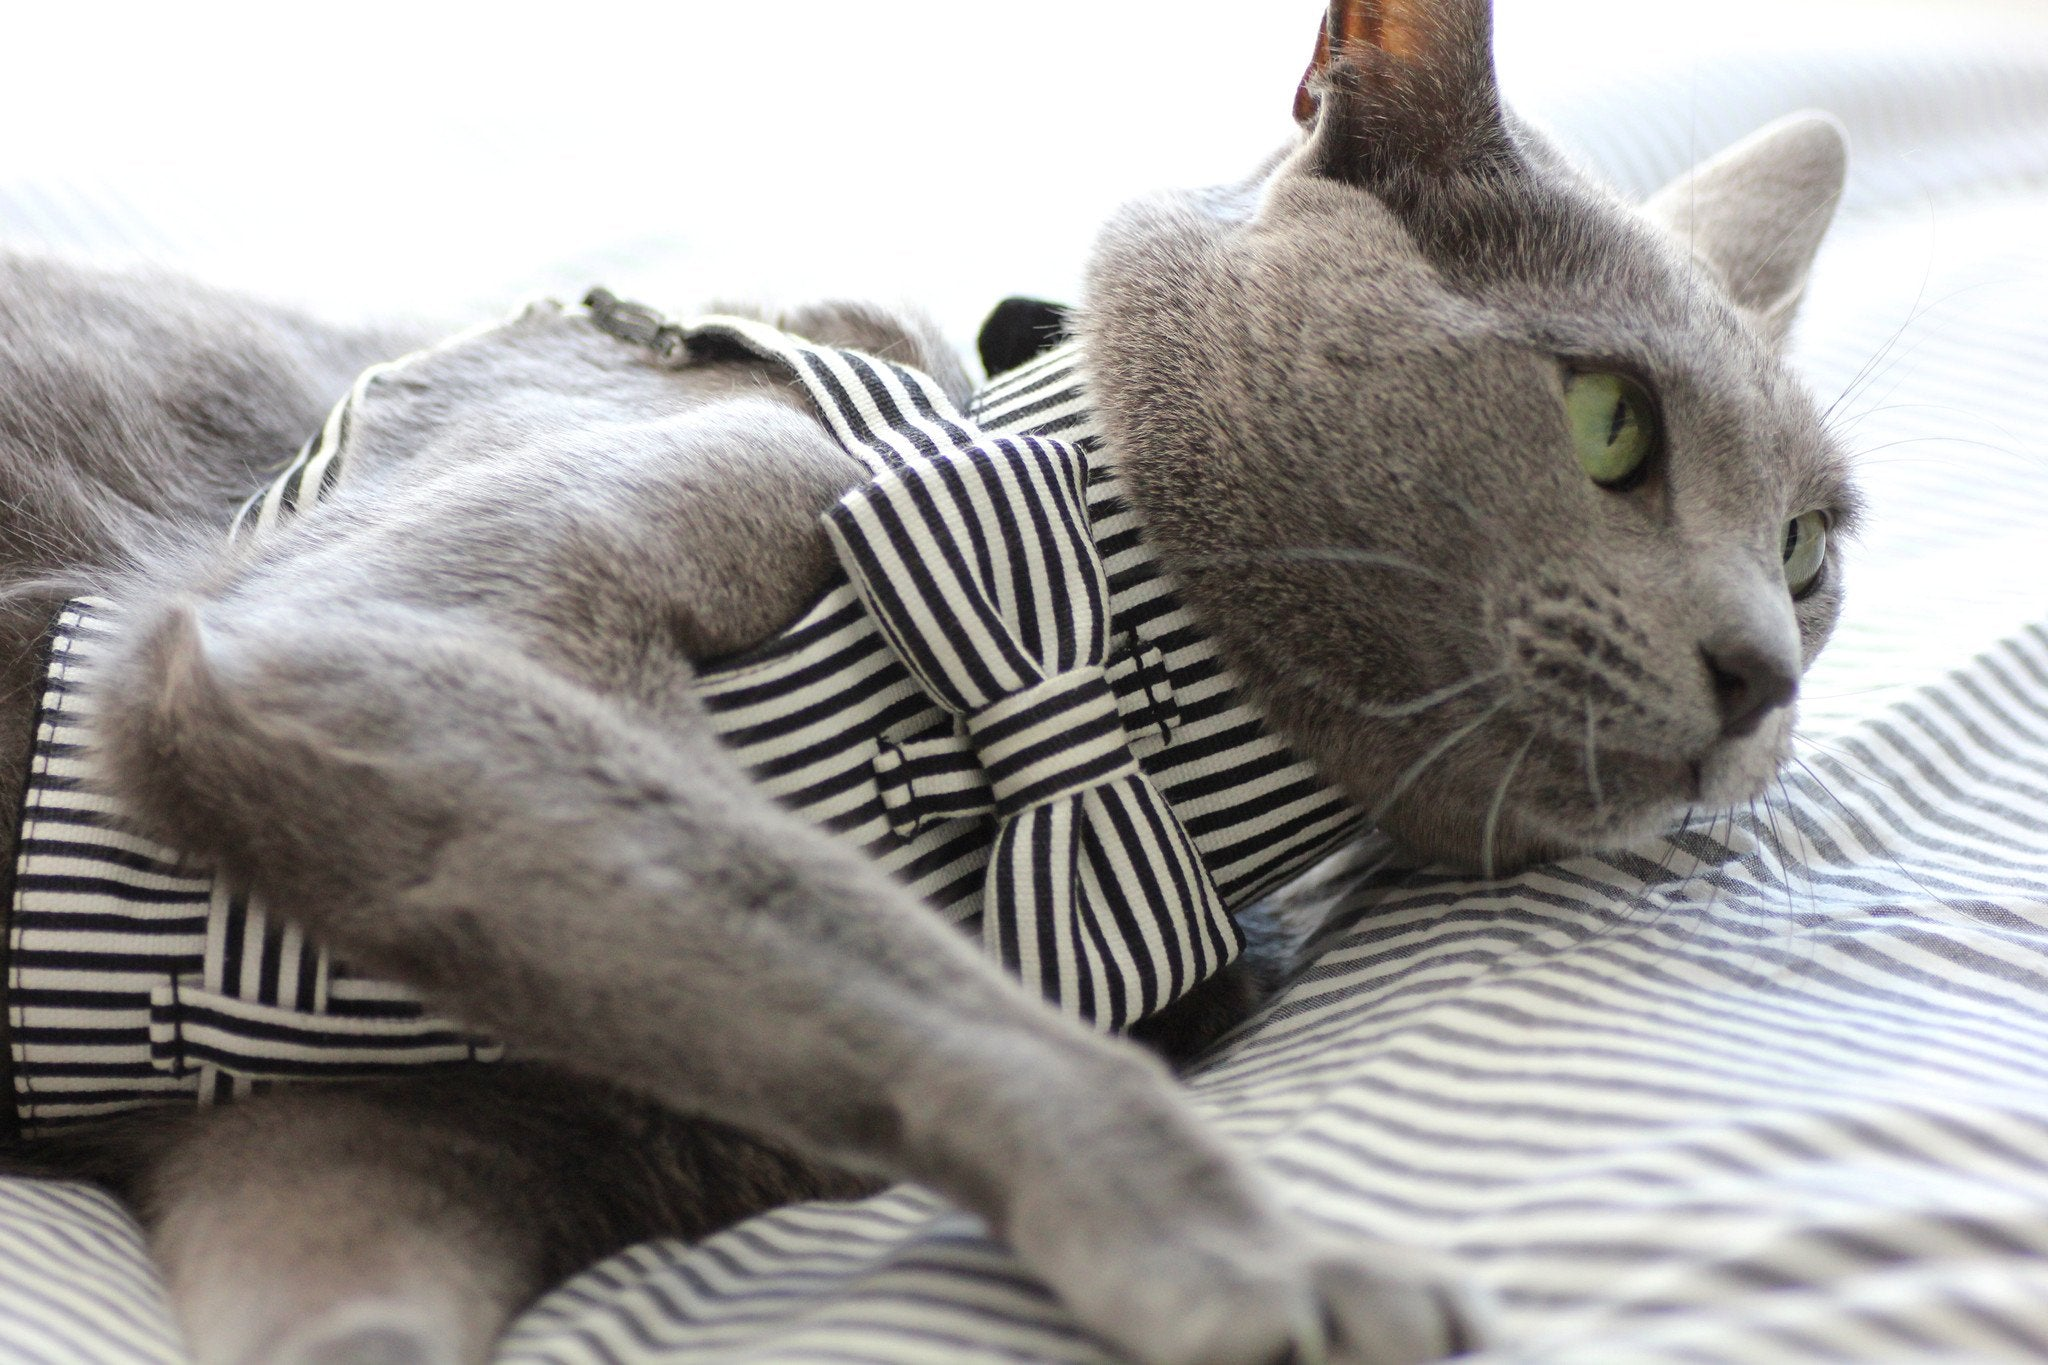 Dharf cat harness with adjustable straps in black and white stripes